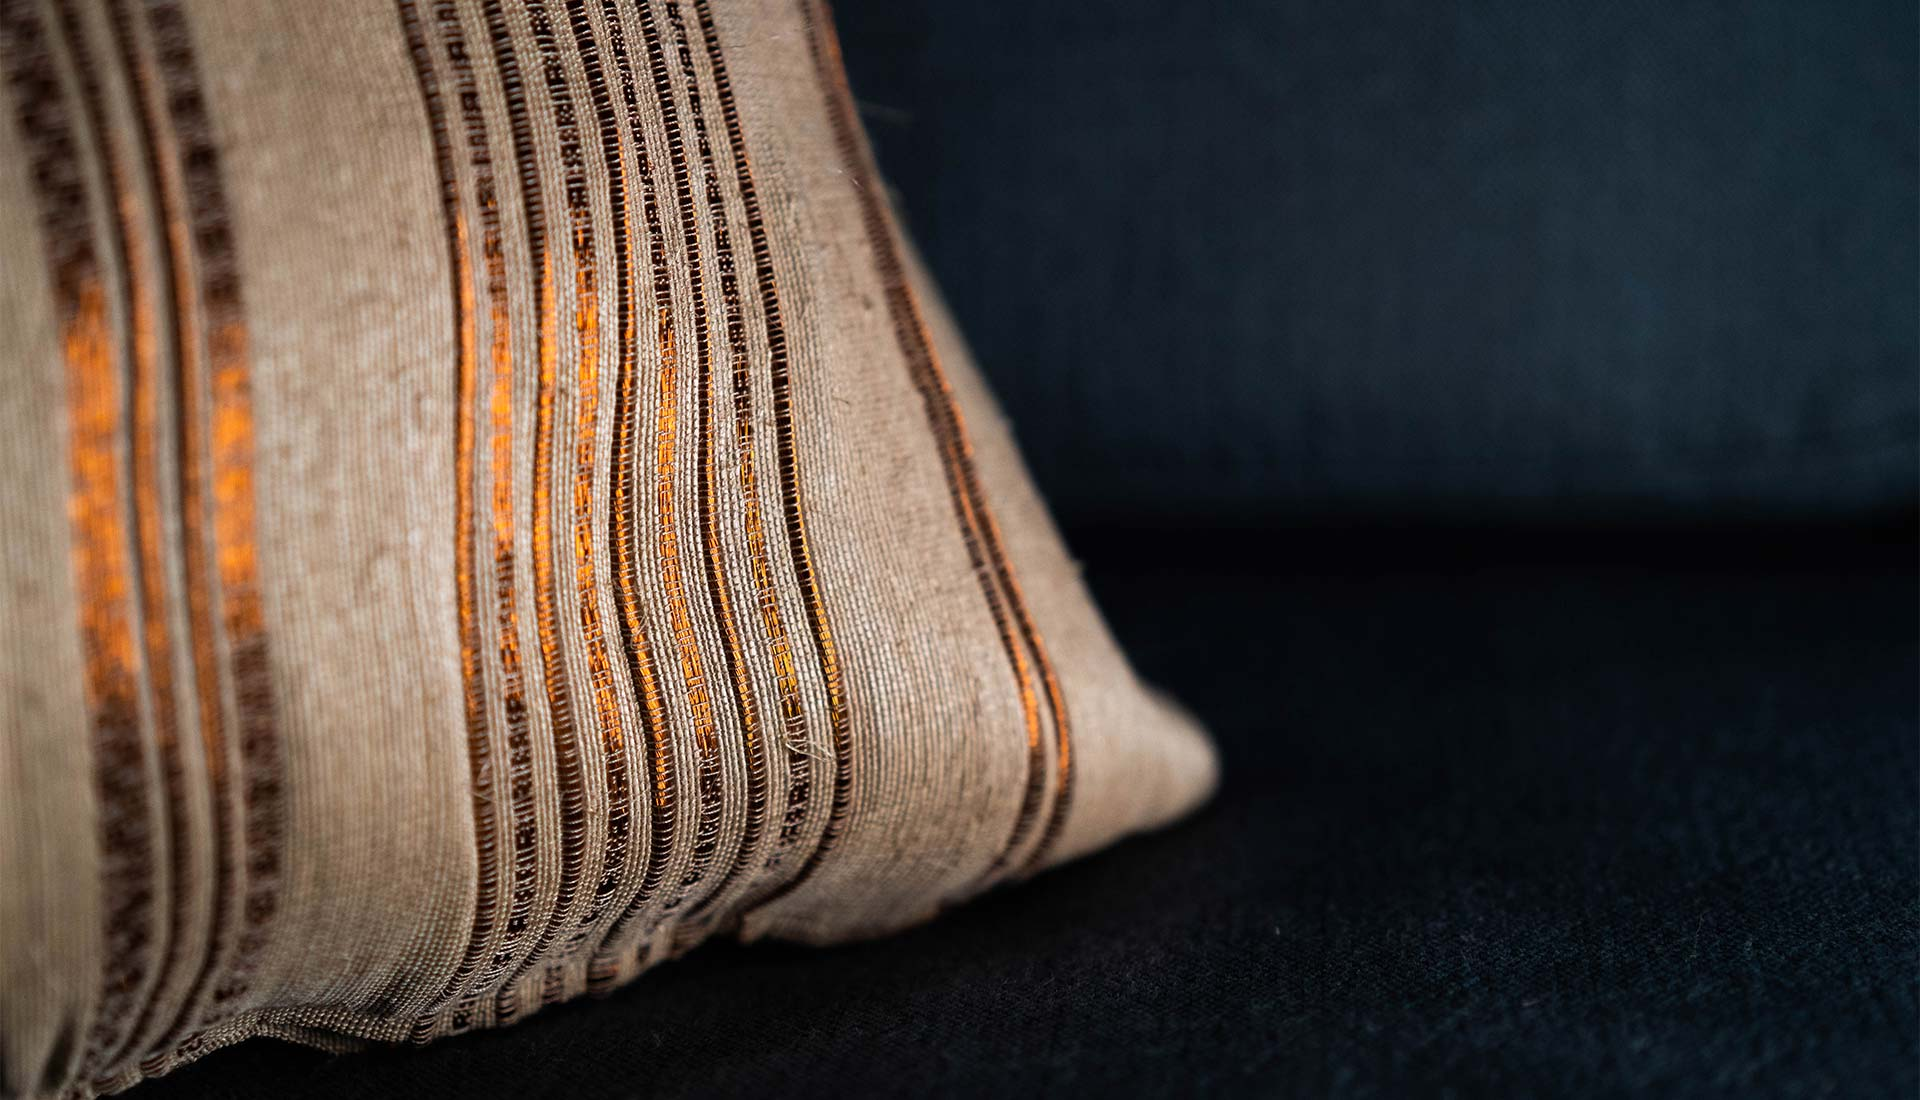 Closeup to plantain fiber and copper threads handwoven pillow